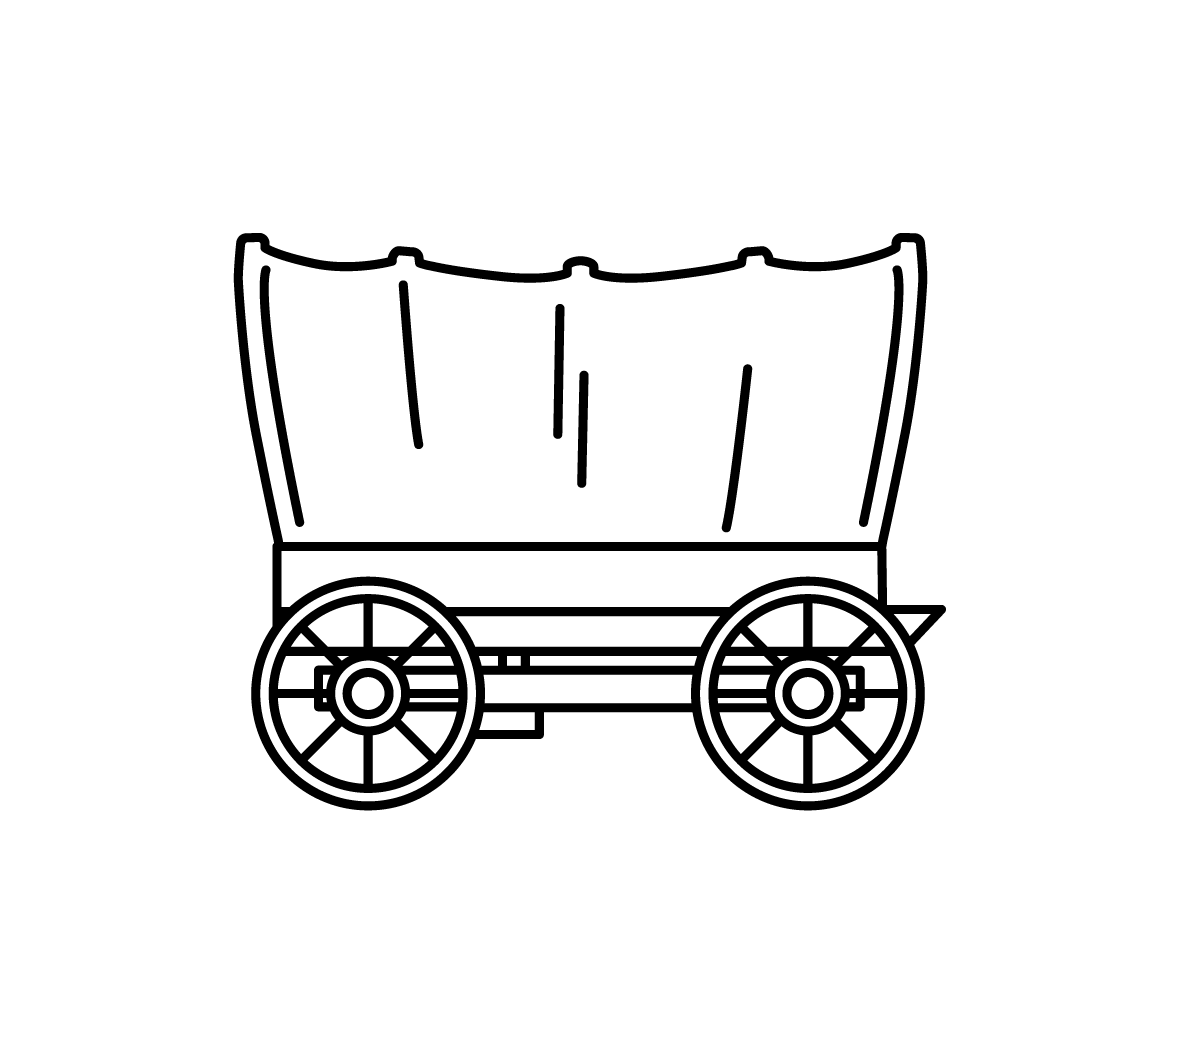 Wagon clipart farm wagon.  collection of covered